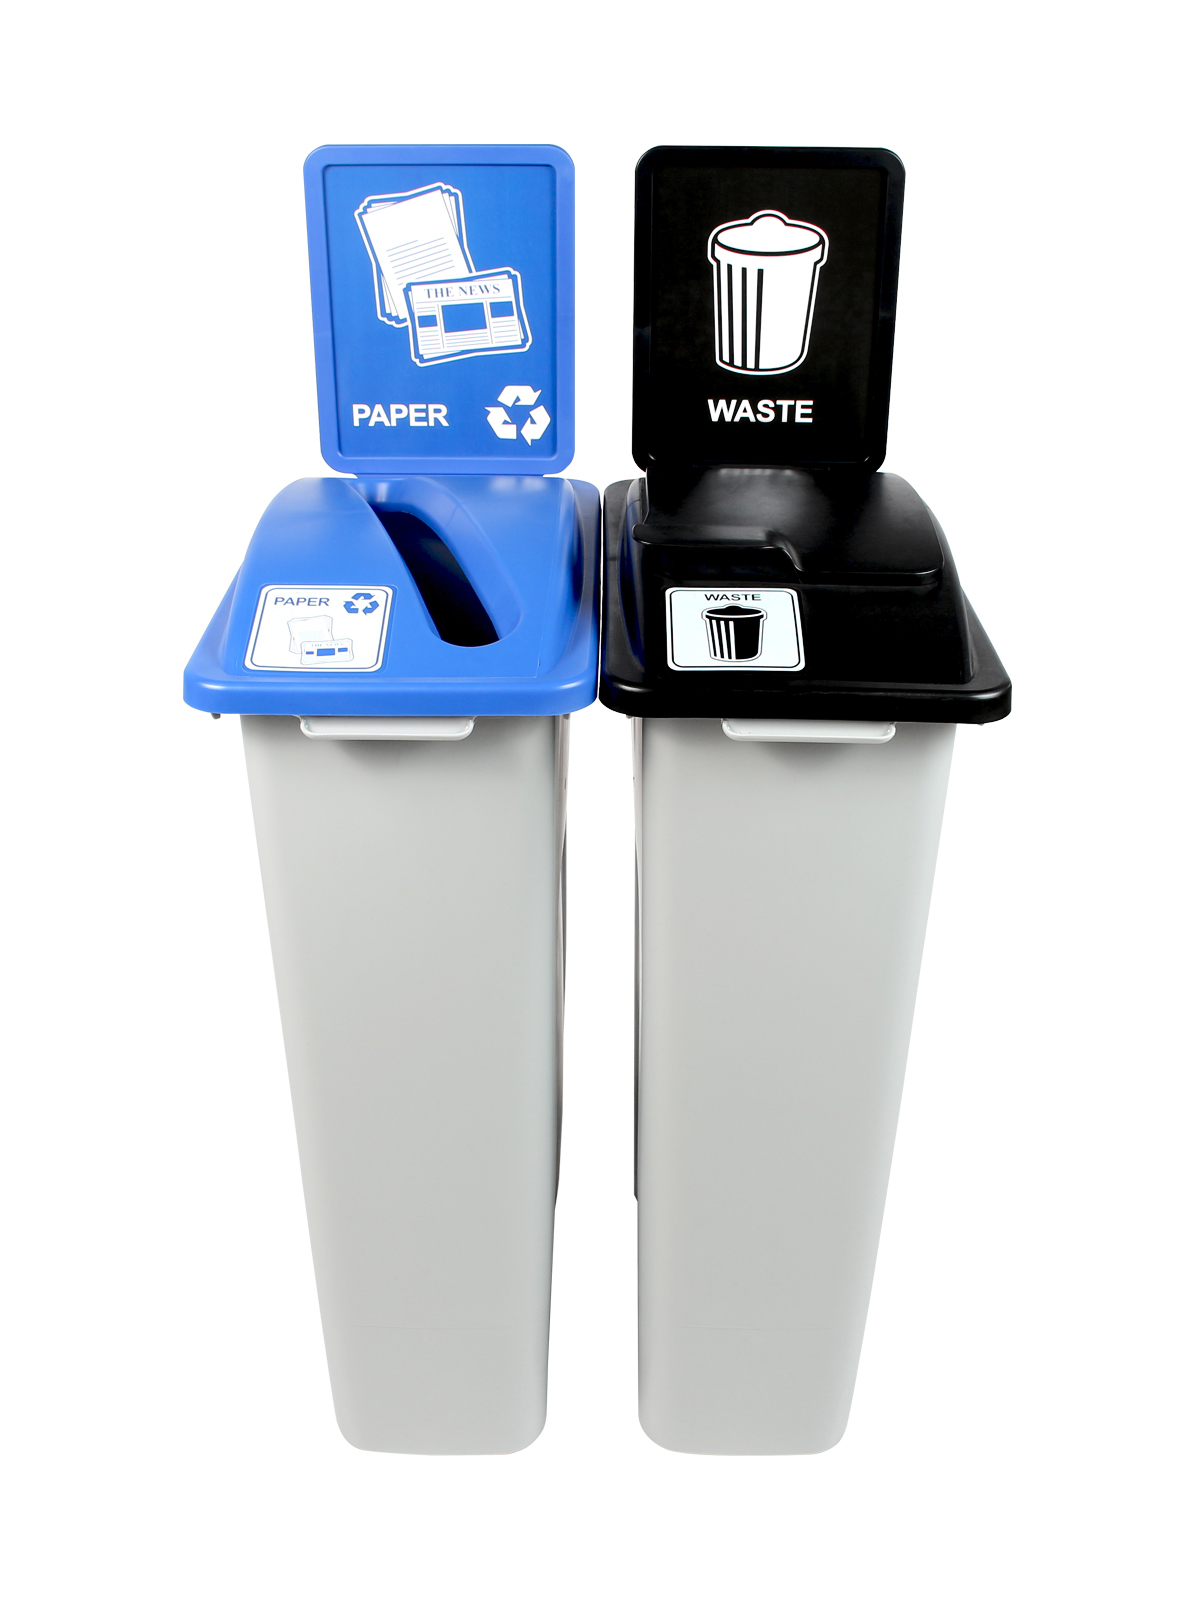 WASTE WATCHER - Double - Paper-Waste - Slot-Solid Lift - Grey-Blue-Black